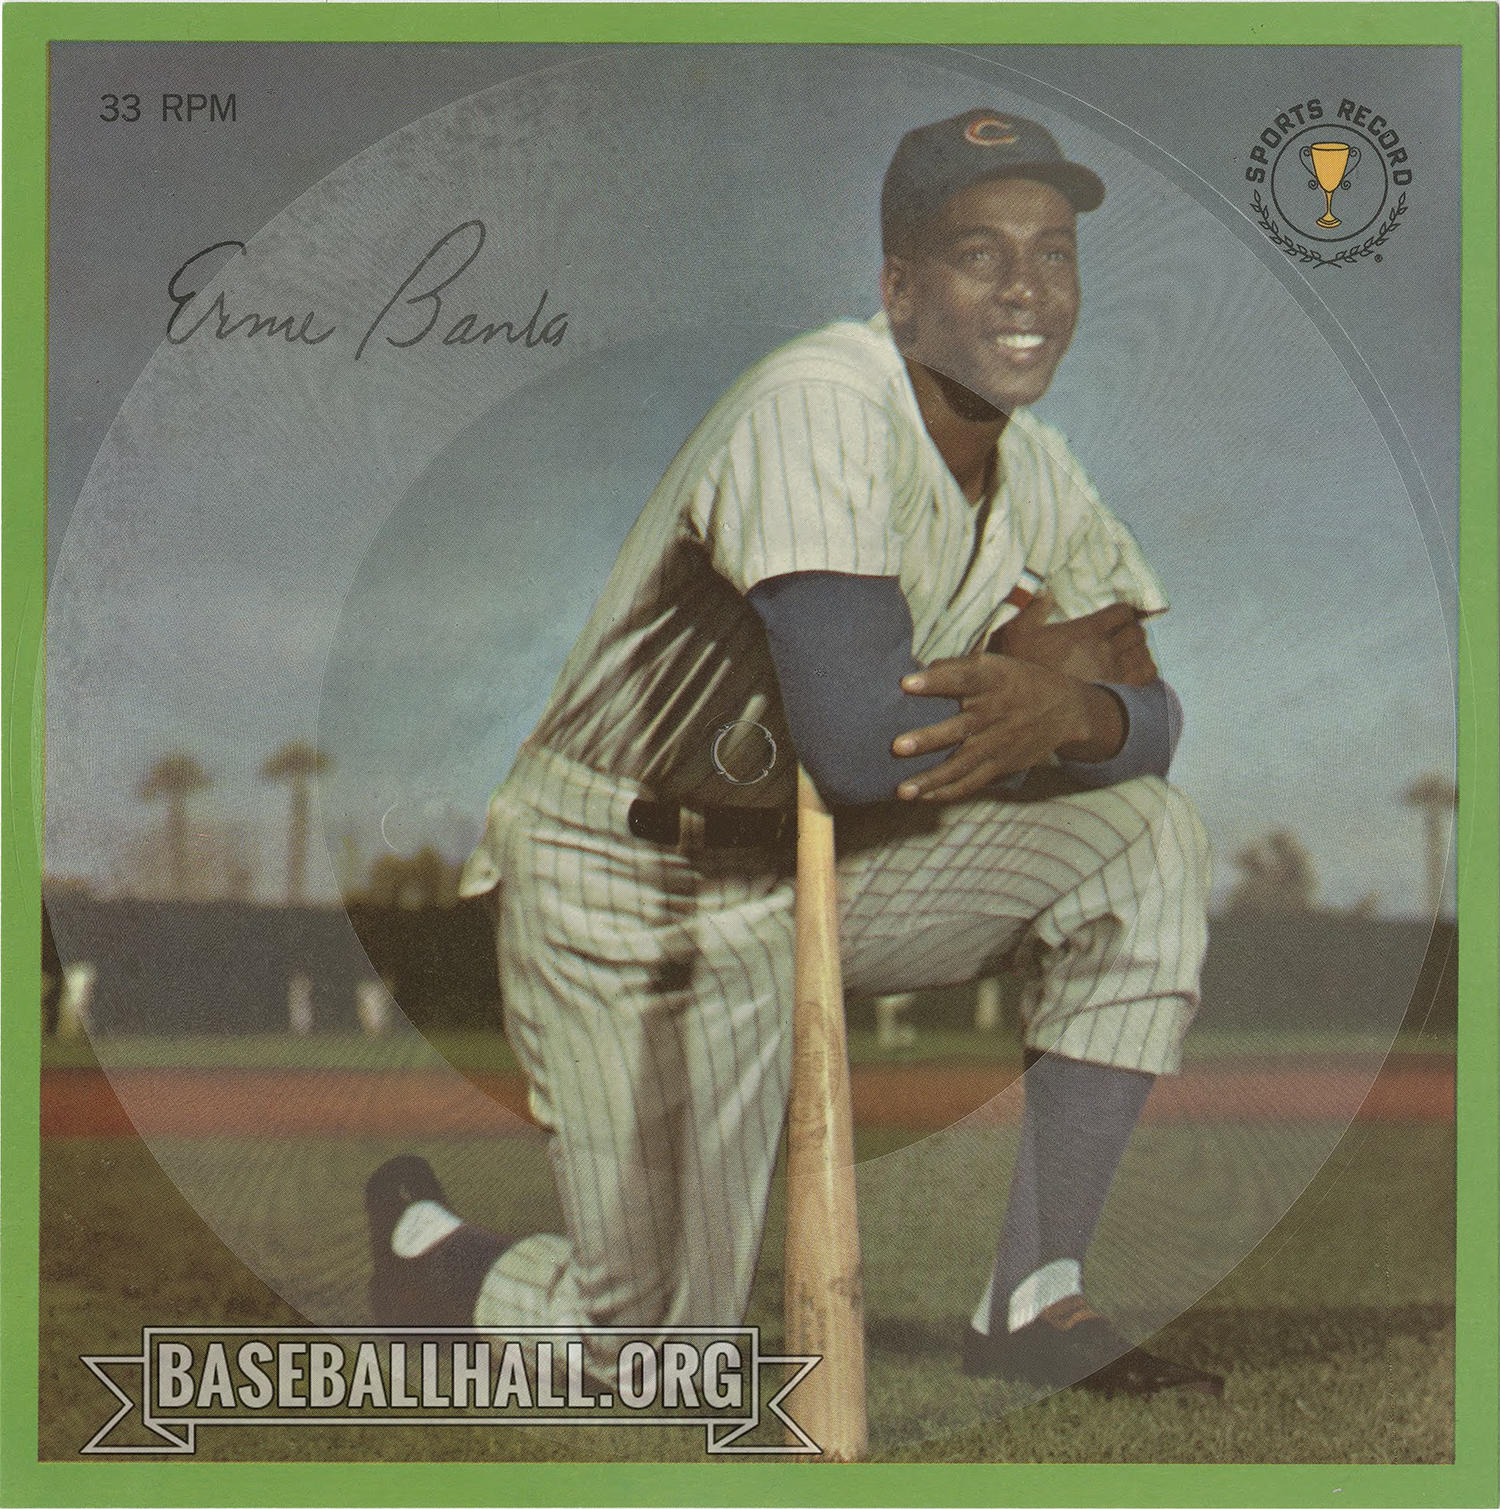 On Ernie Banks' 1964 Auravision record, he gave tips to young players on how to approach hitting. (National Baseball Hall of Fame and Museum)